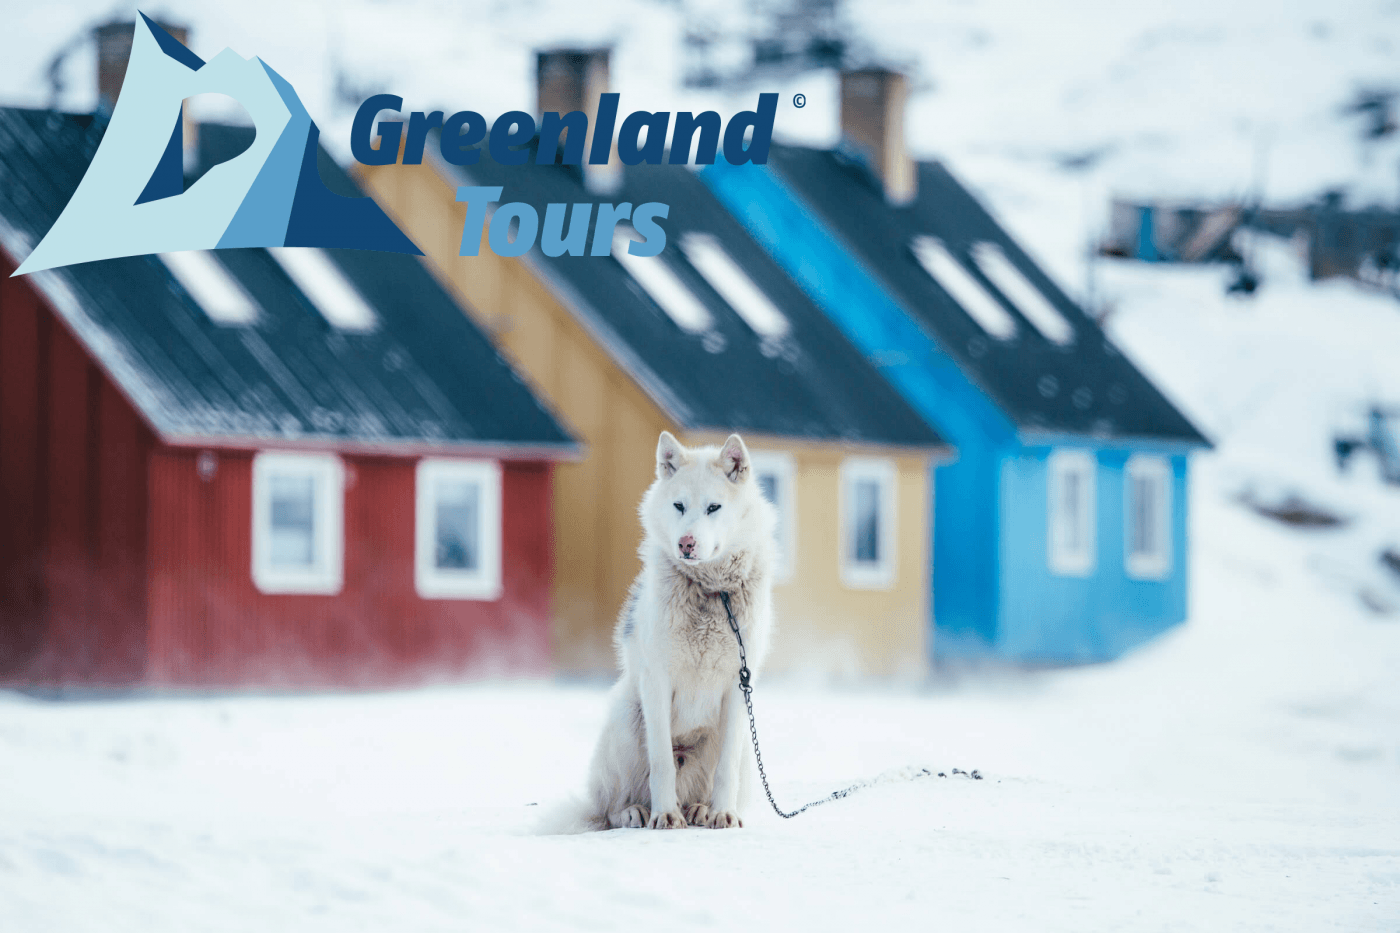 Greenland Tours – Frozen West